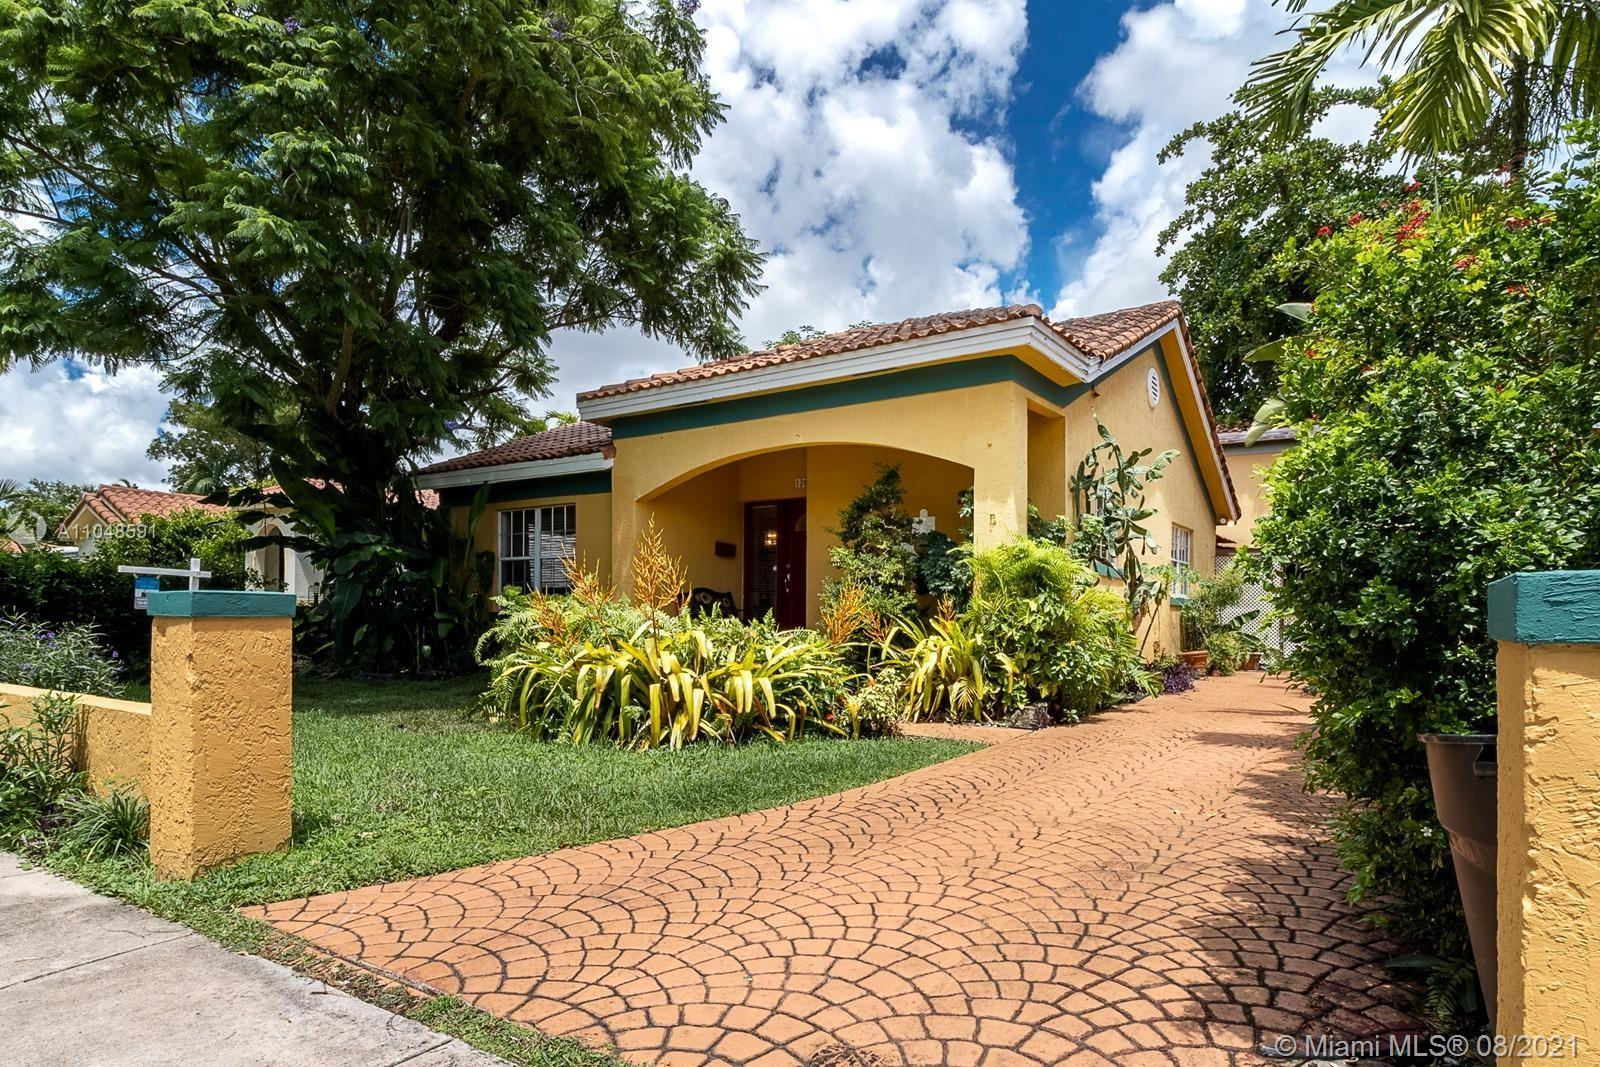 A charming 3 bedroom, 2 bath single family home located in the historic, desirable, and exclusive city of Coral Gables one of the most sought-after neighborhoods. Fabulous spacious home with formal living room, dining room, family room, and updated kitchen. Kitchen offers ample counter space, SS appliances, plenty of storage and open to the dining area with dine in countertop. Vaulted ceiling with lots of natural light, tile throughout, covered patio and a lot more. Complemented with two independent 1 bedroom ;1 bath located in rear of the property with its independent entrance. Perfect home to entertain and enjoy conveniently located minutes away from Miracle Mile, expressways, shopping, amazing restaurants, supermarkets, golf courses, landmarks, and great schools.